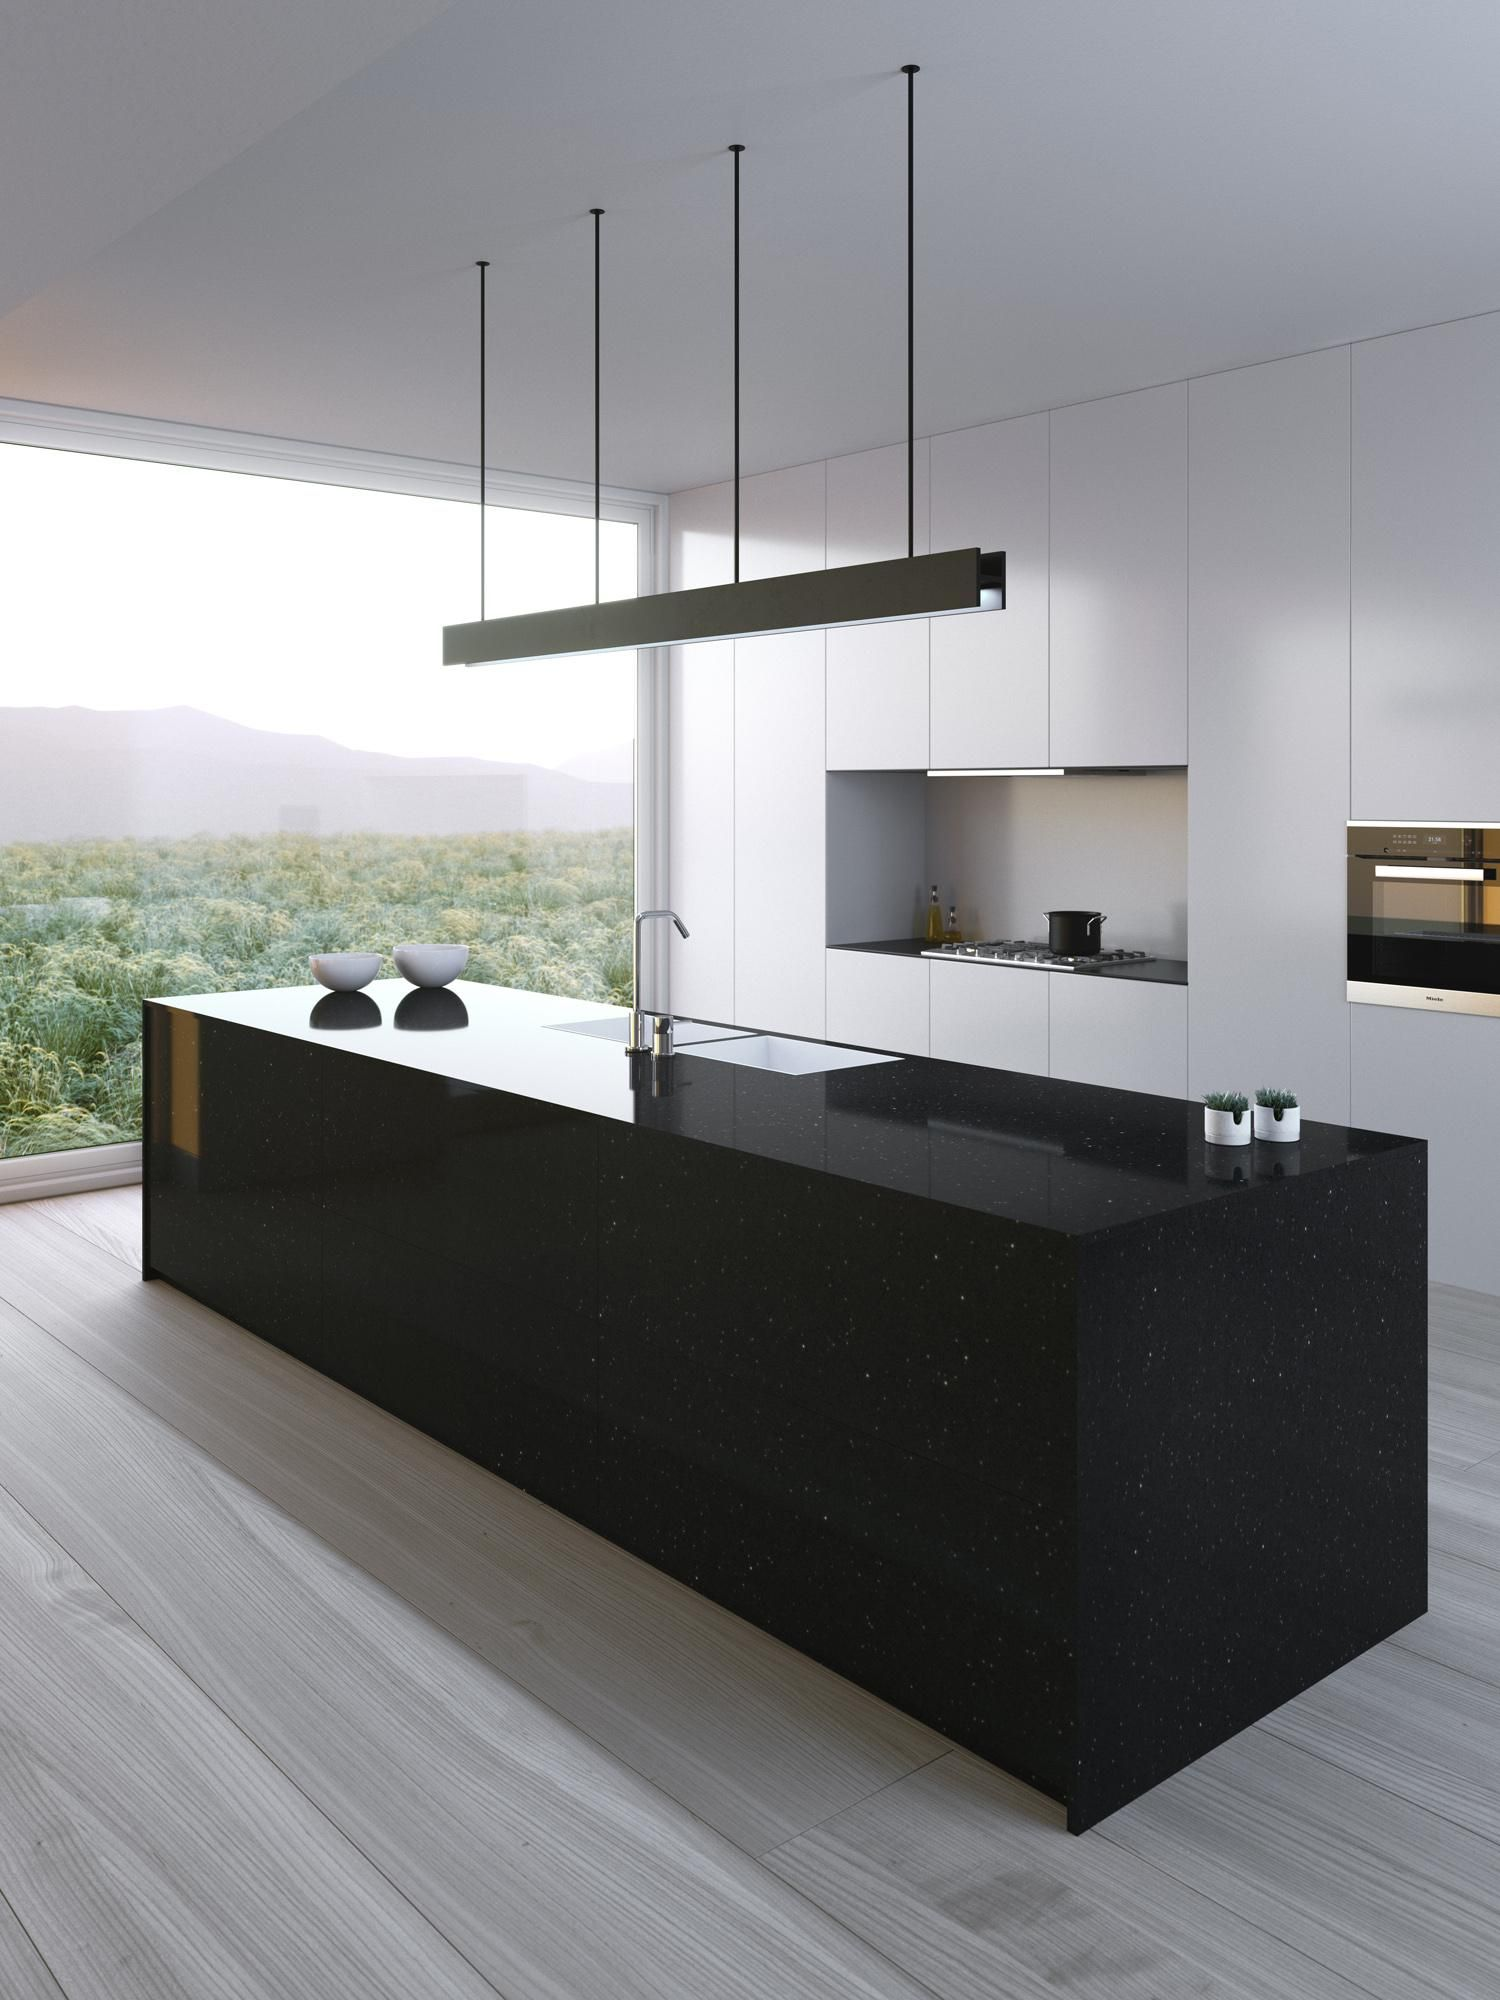 Minimalist Kitchen Island Decor